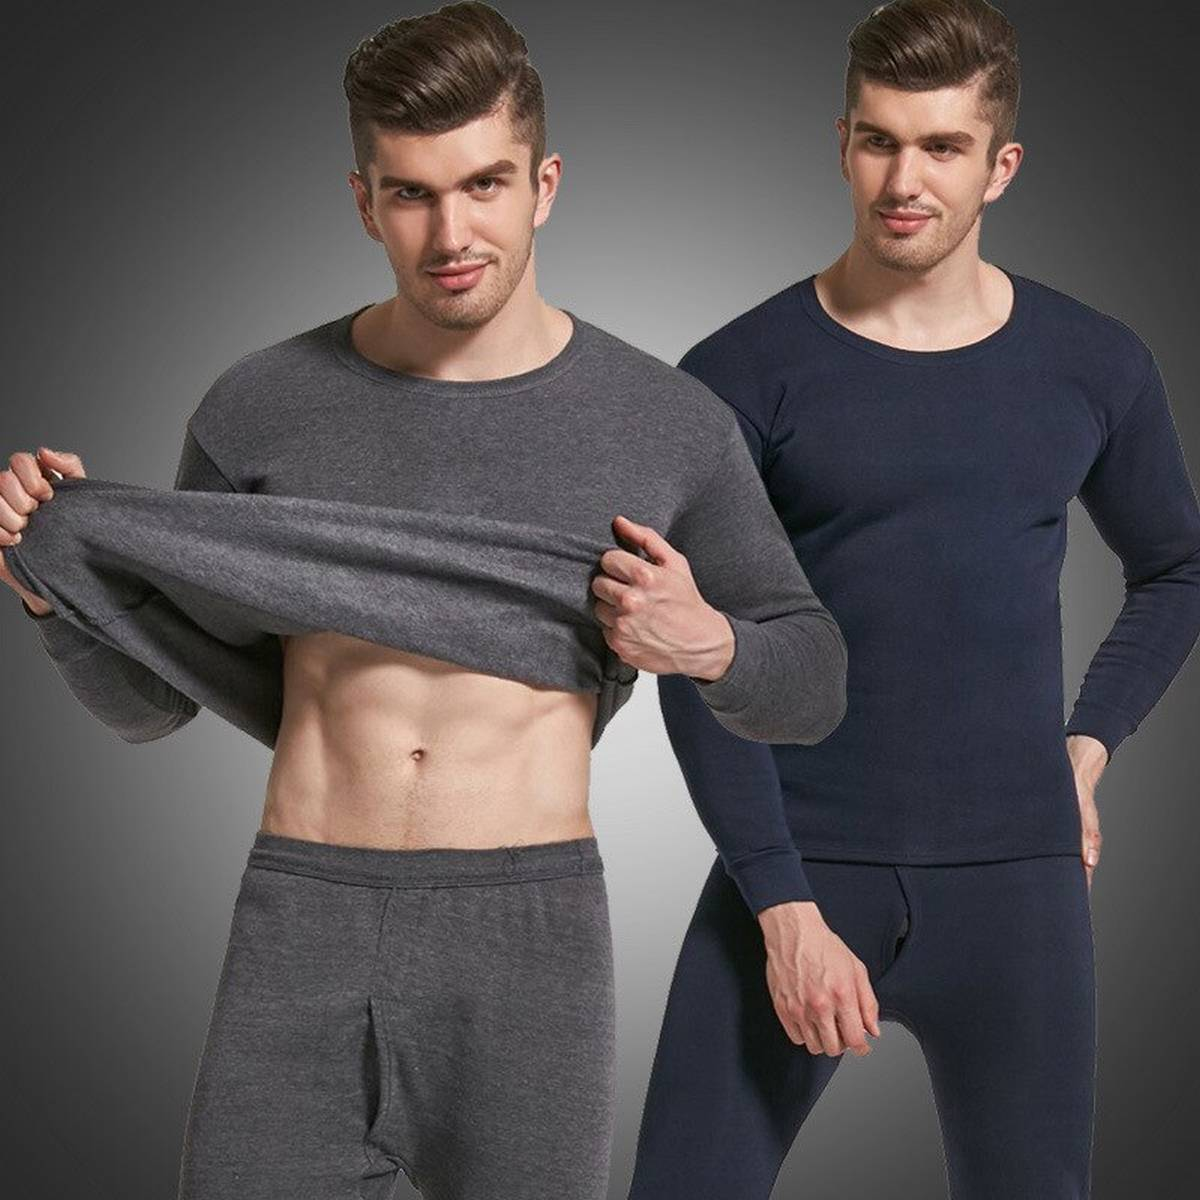 New Winter Thermal Underwear for Men Long Johns Male Thermal Shirt + pants Set Warm Thick Fleece Pajamas Suits Inner Wear for Men